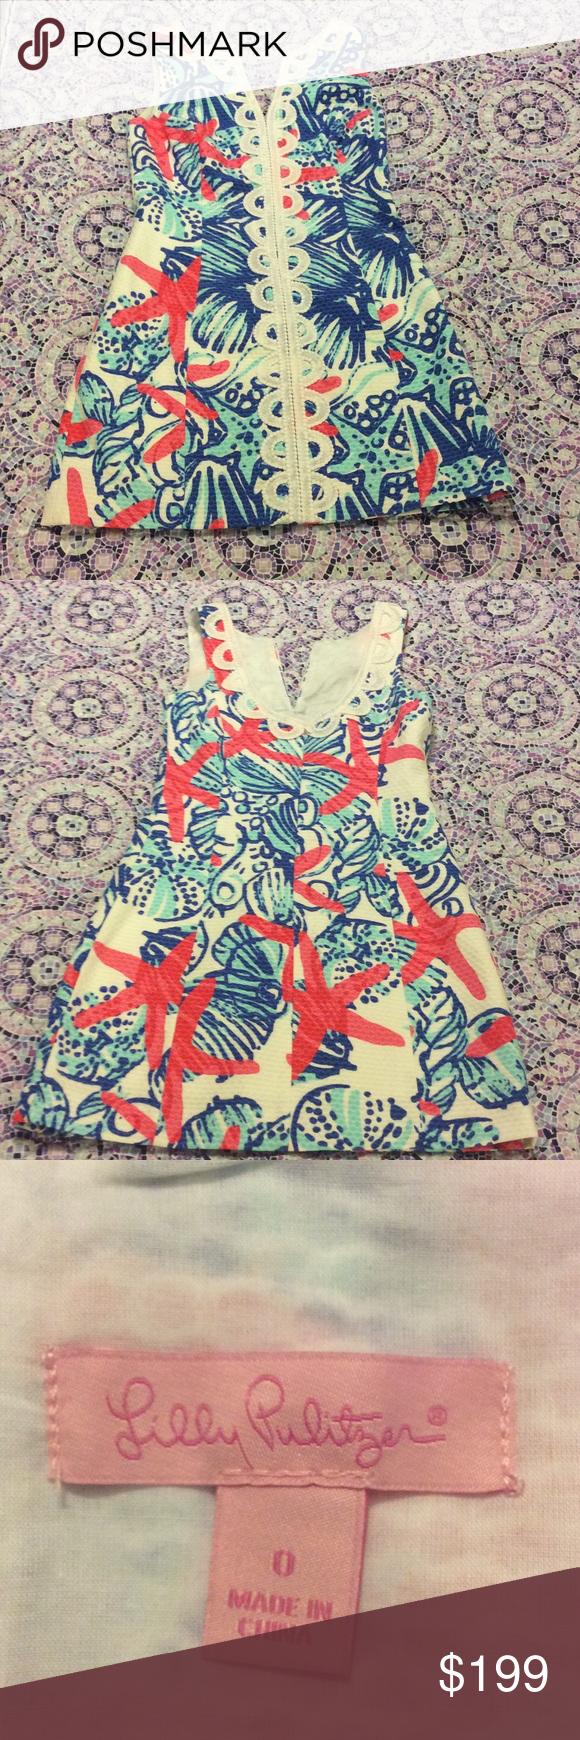 NWOT Lilly Pulitzer she she shells shift This dress is brand new but it has been hemmed! Please do not make unreasonably low offers, this is a hard to find print. Lilly Pulitzer Dresses Mini